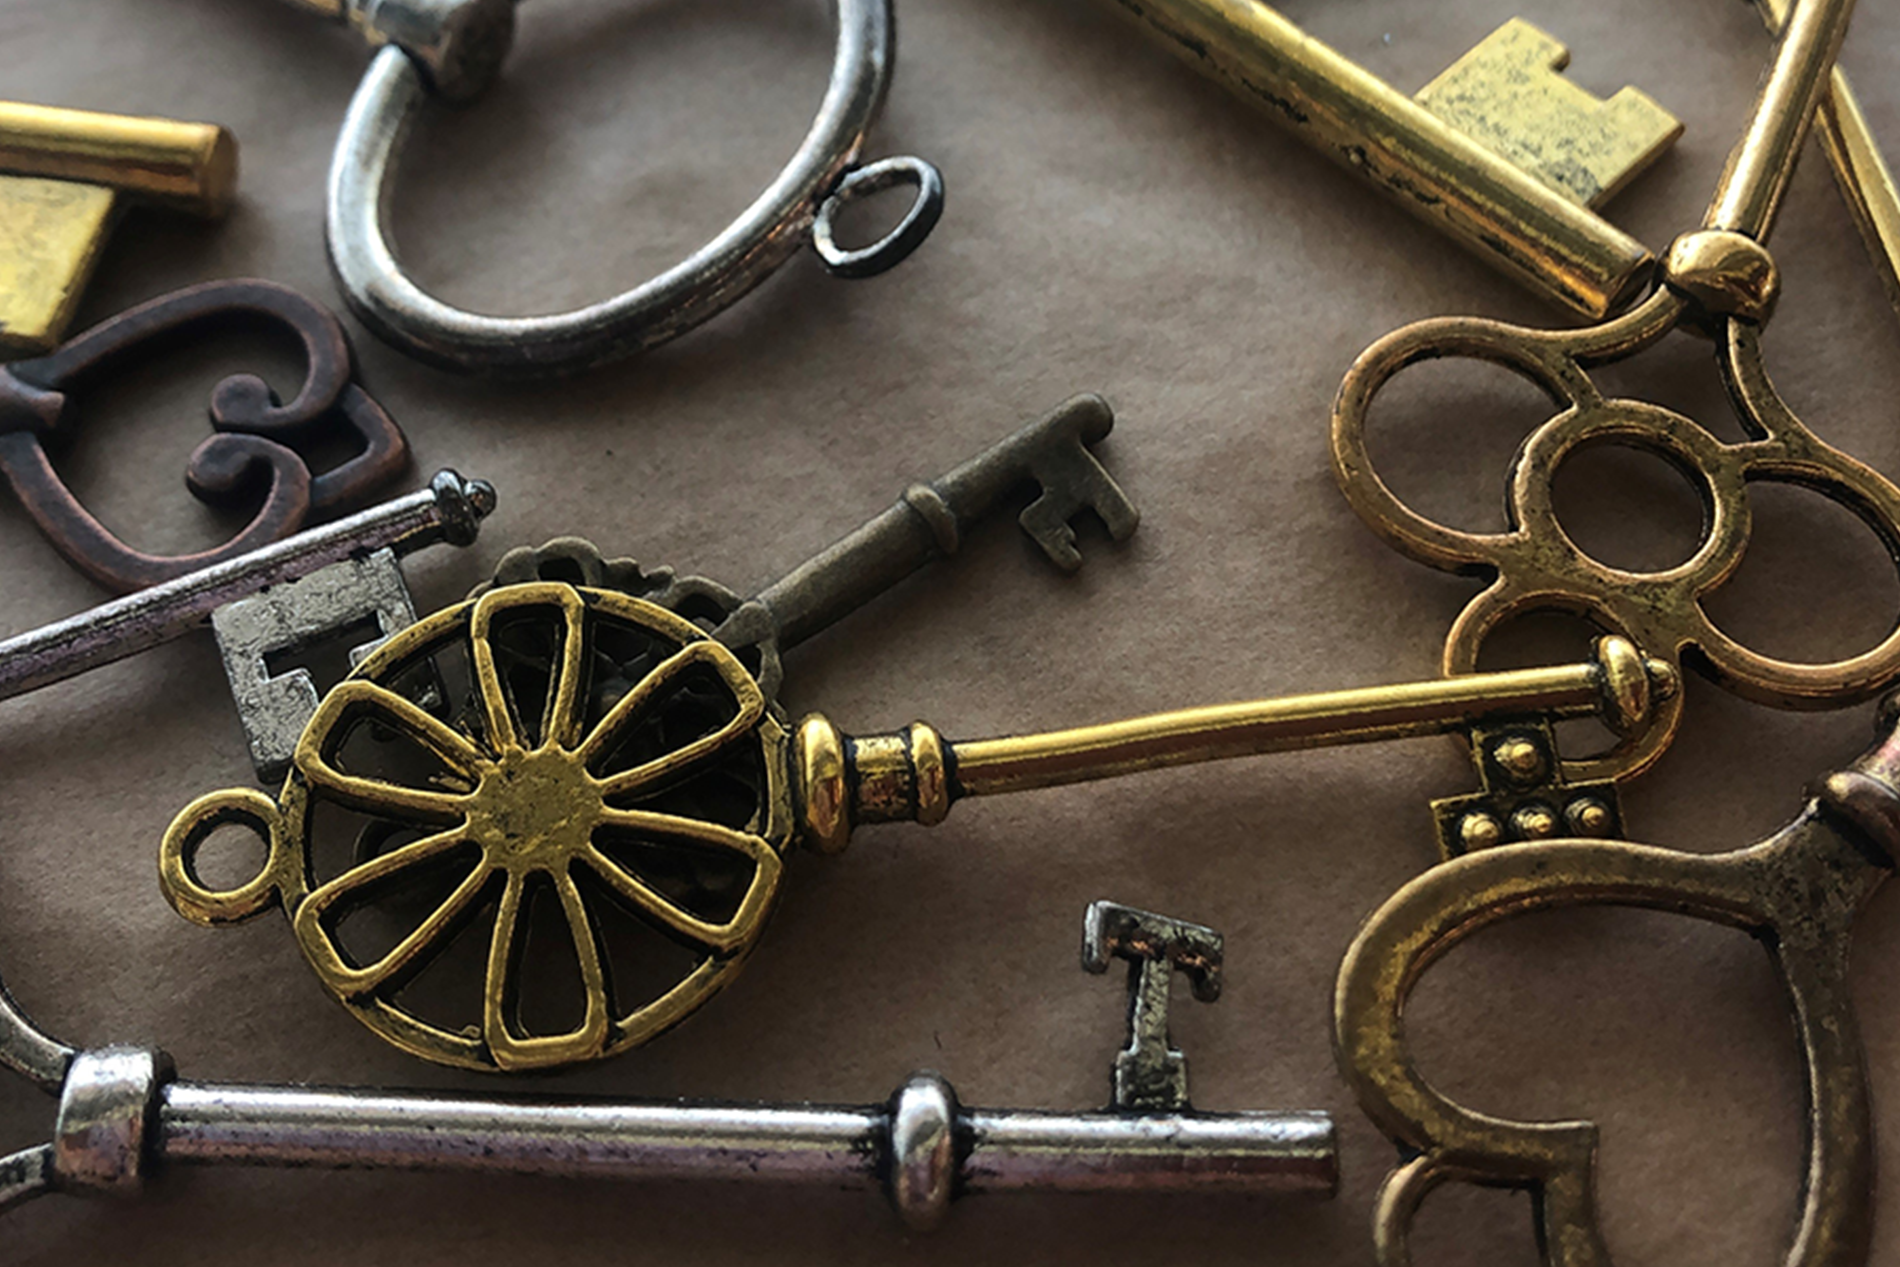 Keys of different shapes and sizes